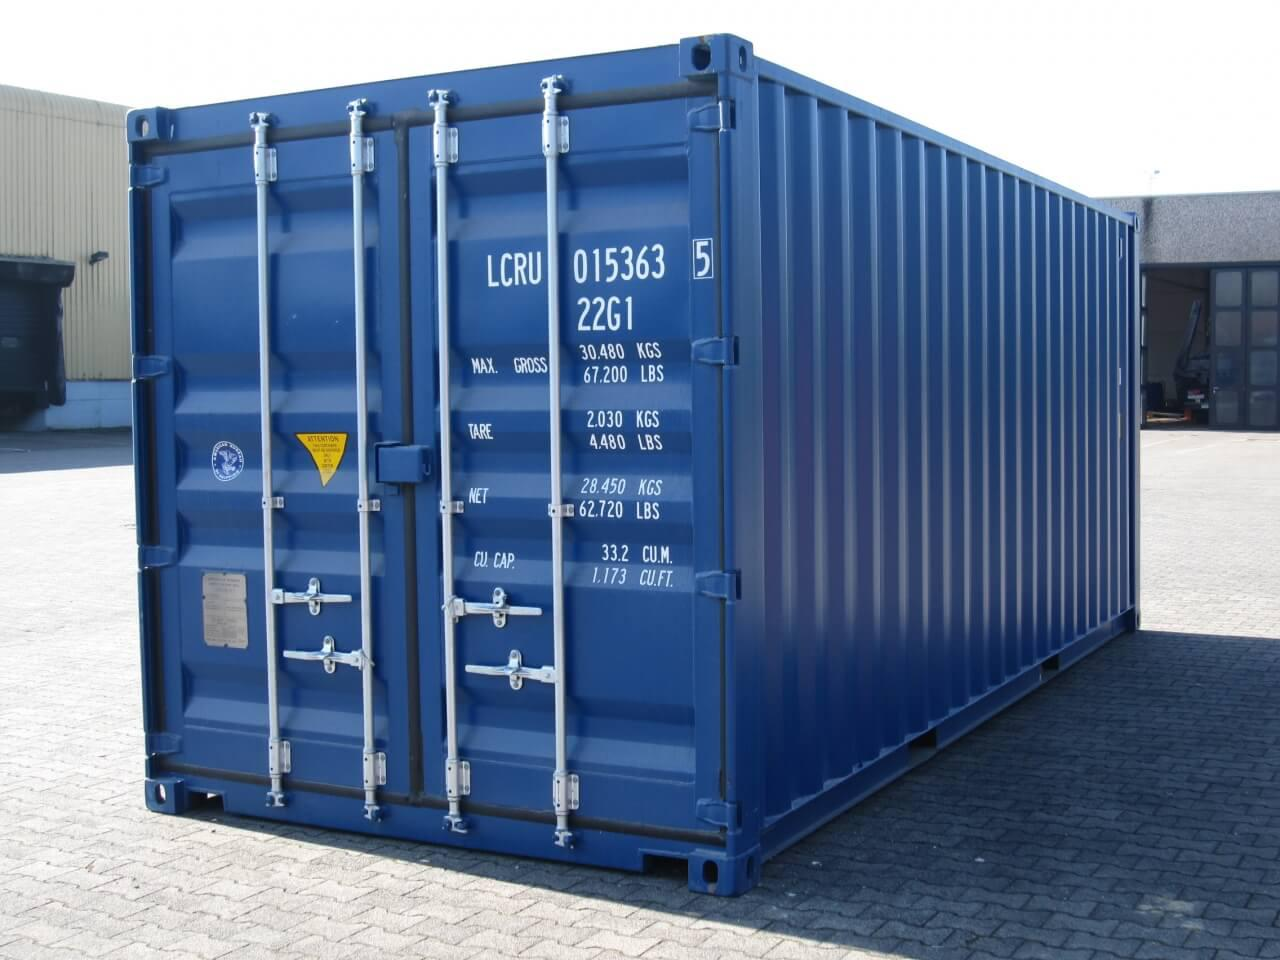 20 fuss see lagercontainer neuwertig. Black Bedroom Furniture Sets. Home Design Ideas